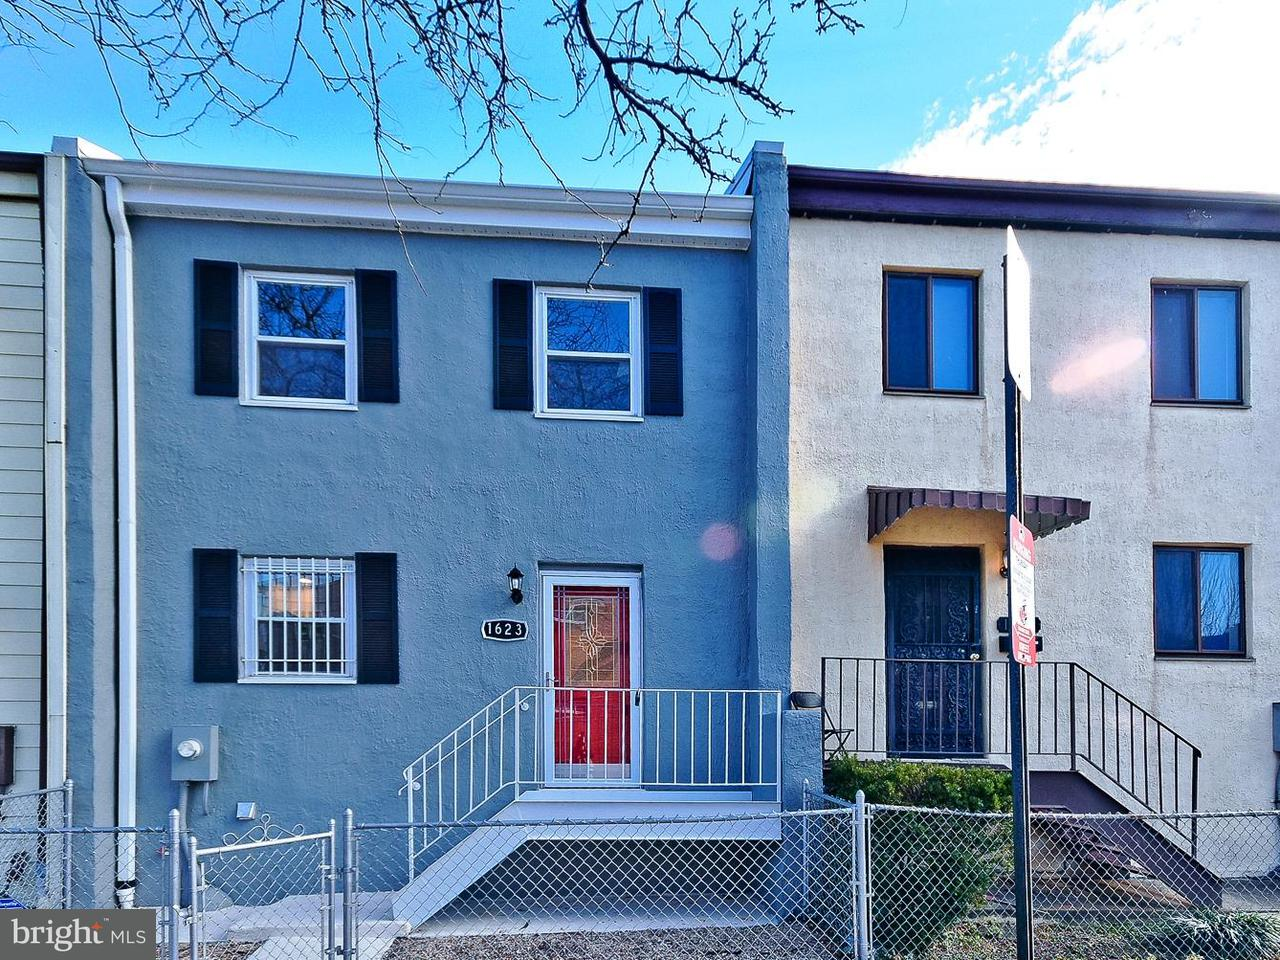 Townhouse for Sale at 1623 11TH PL NE 1623 11TH PL NE Washington, District Of Columbia 20002 United States